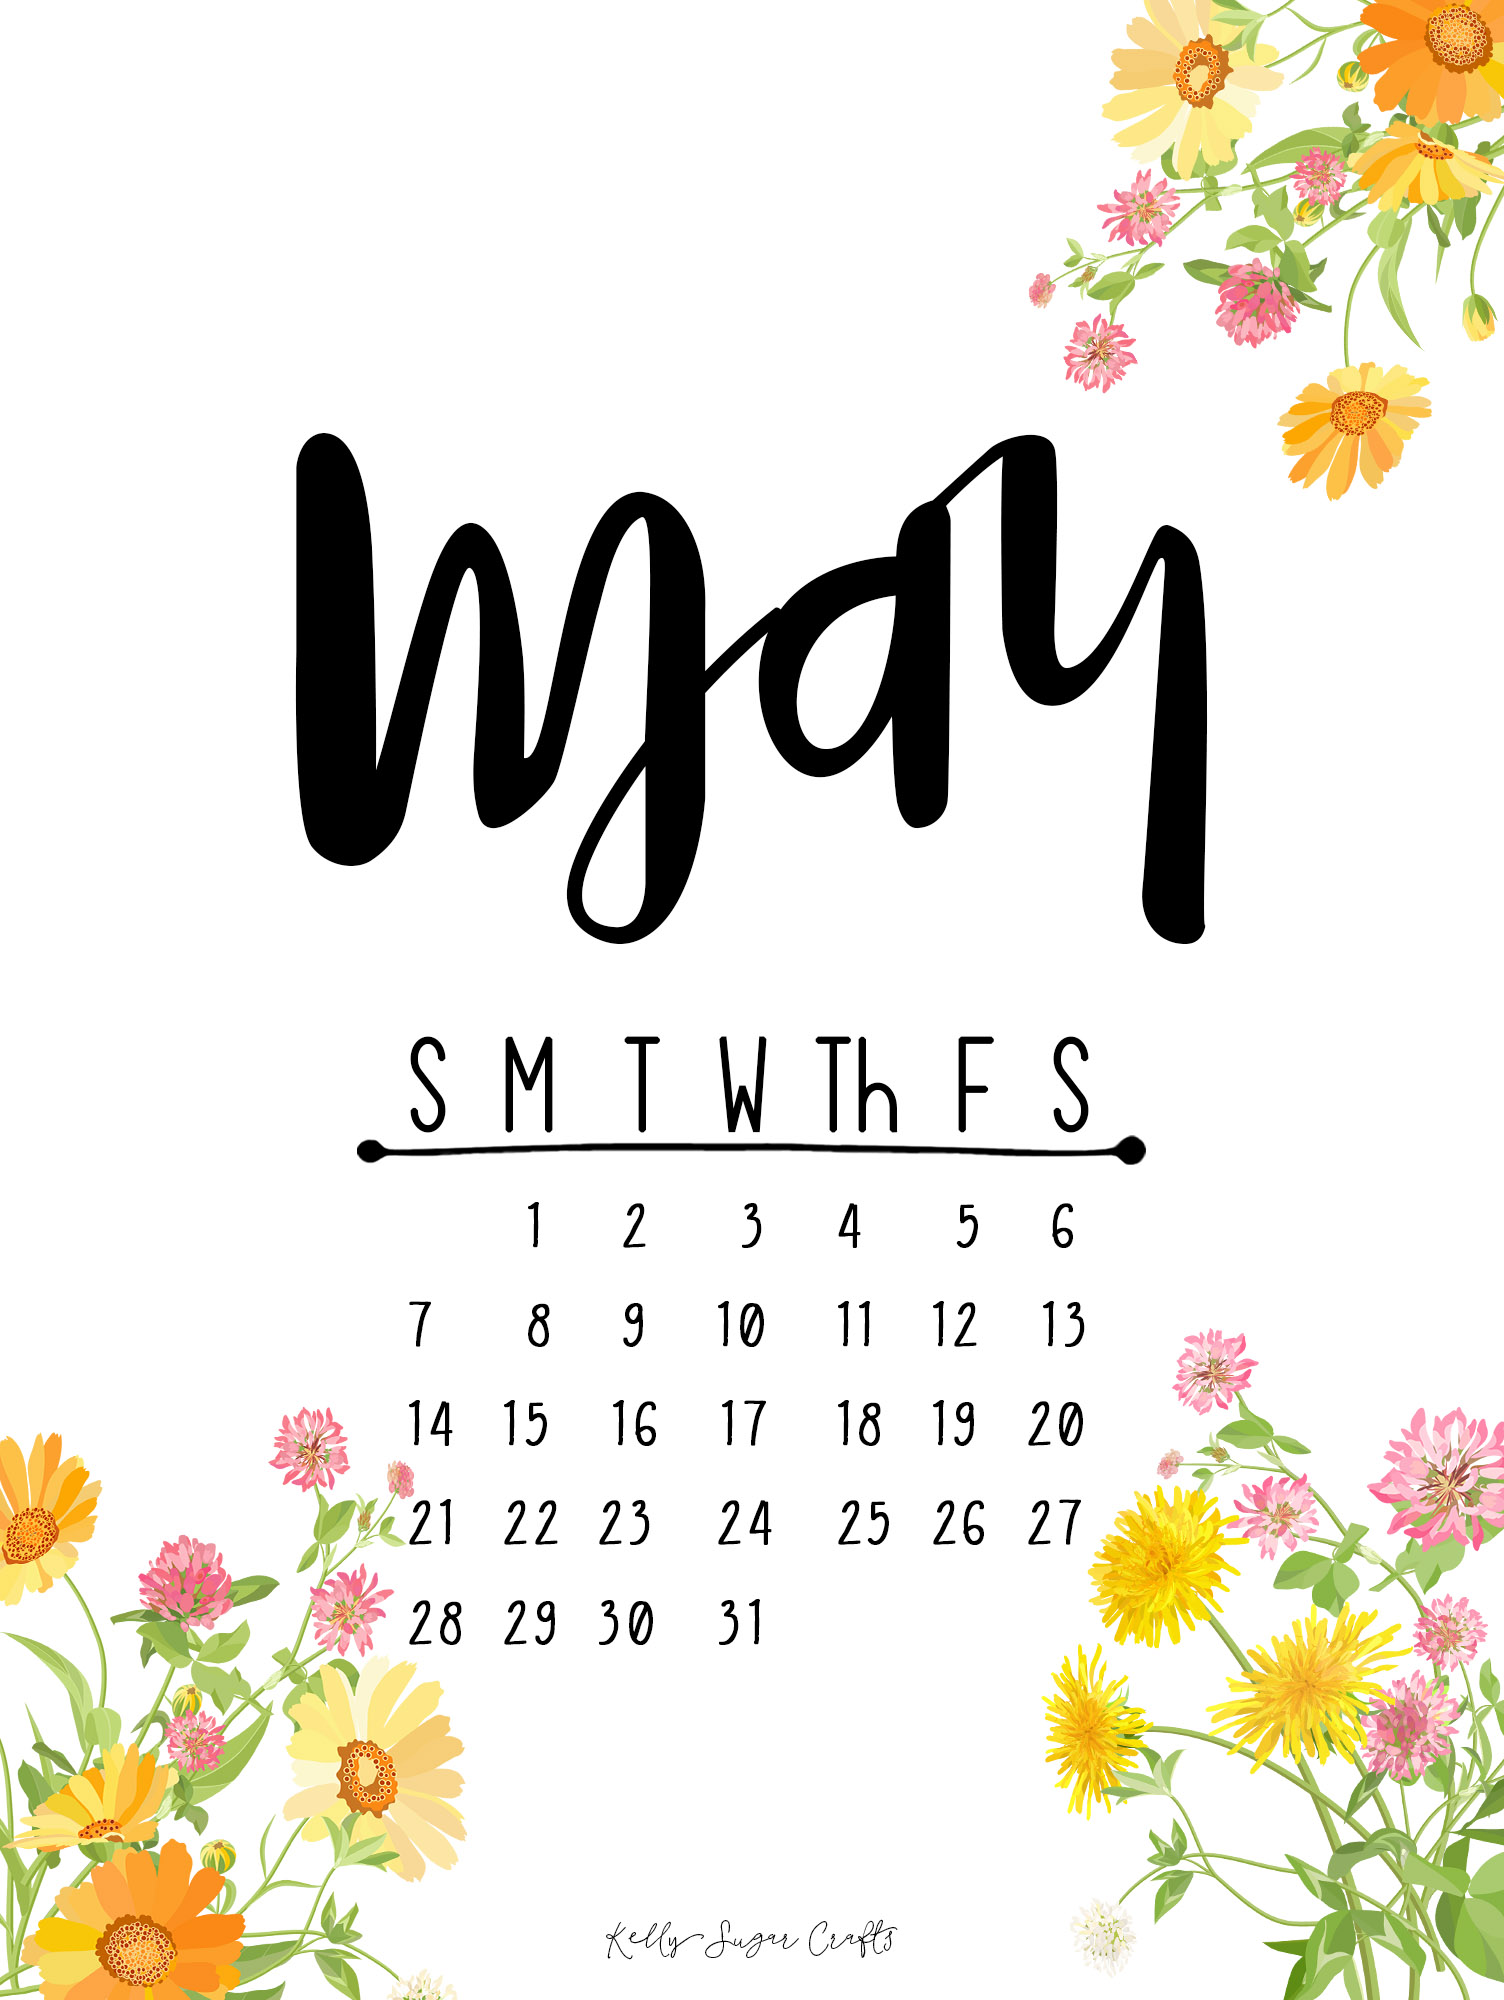 May 2017 Printable Calendar Wallpapers Kelly Sugar Crafts